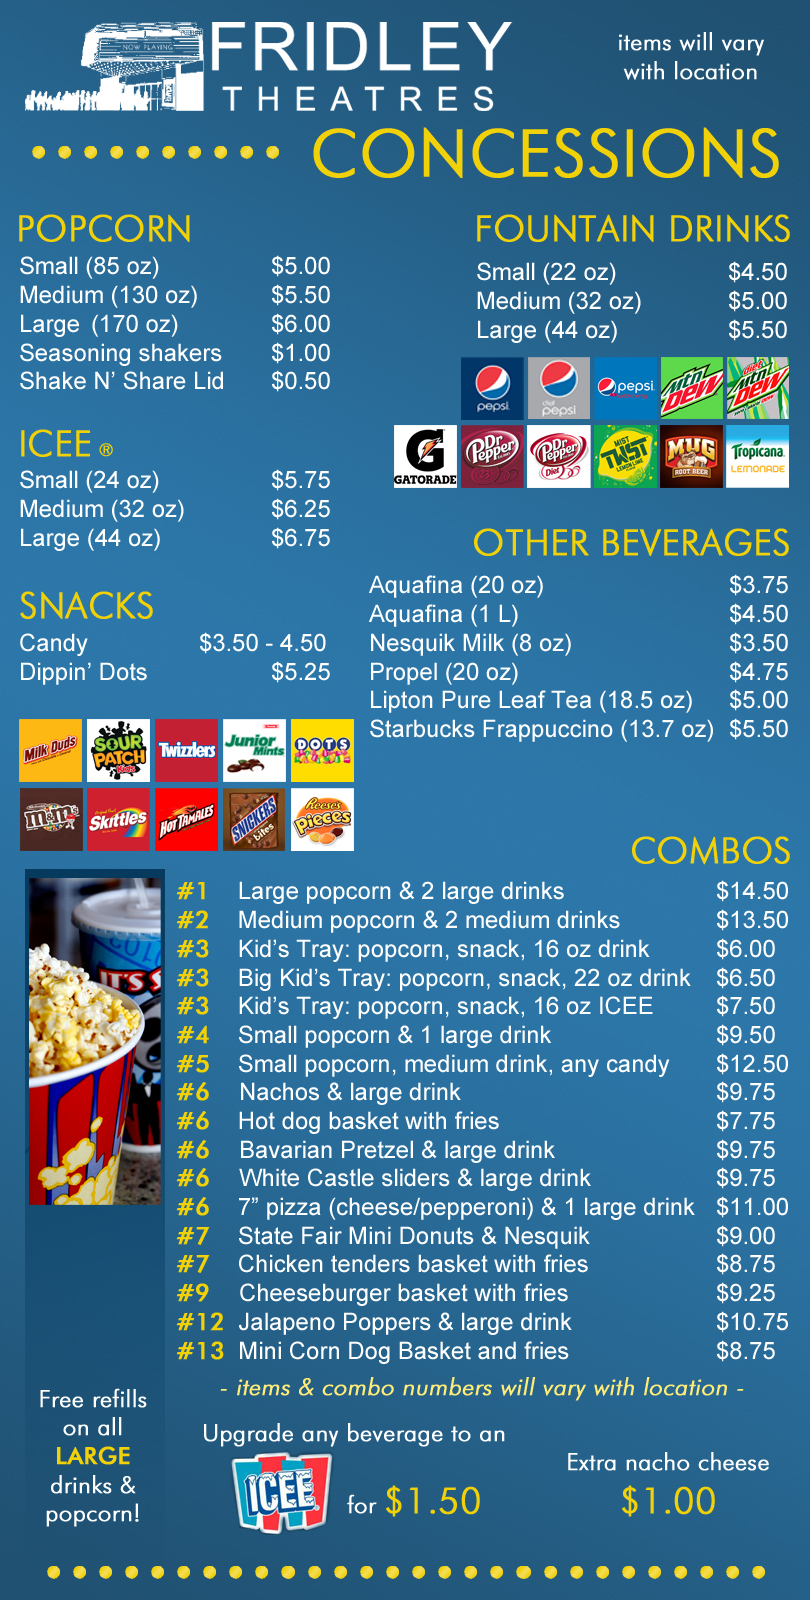 Image for concession items and prices